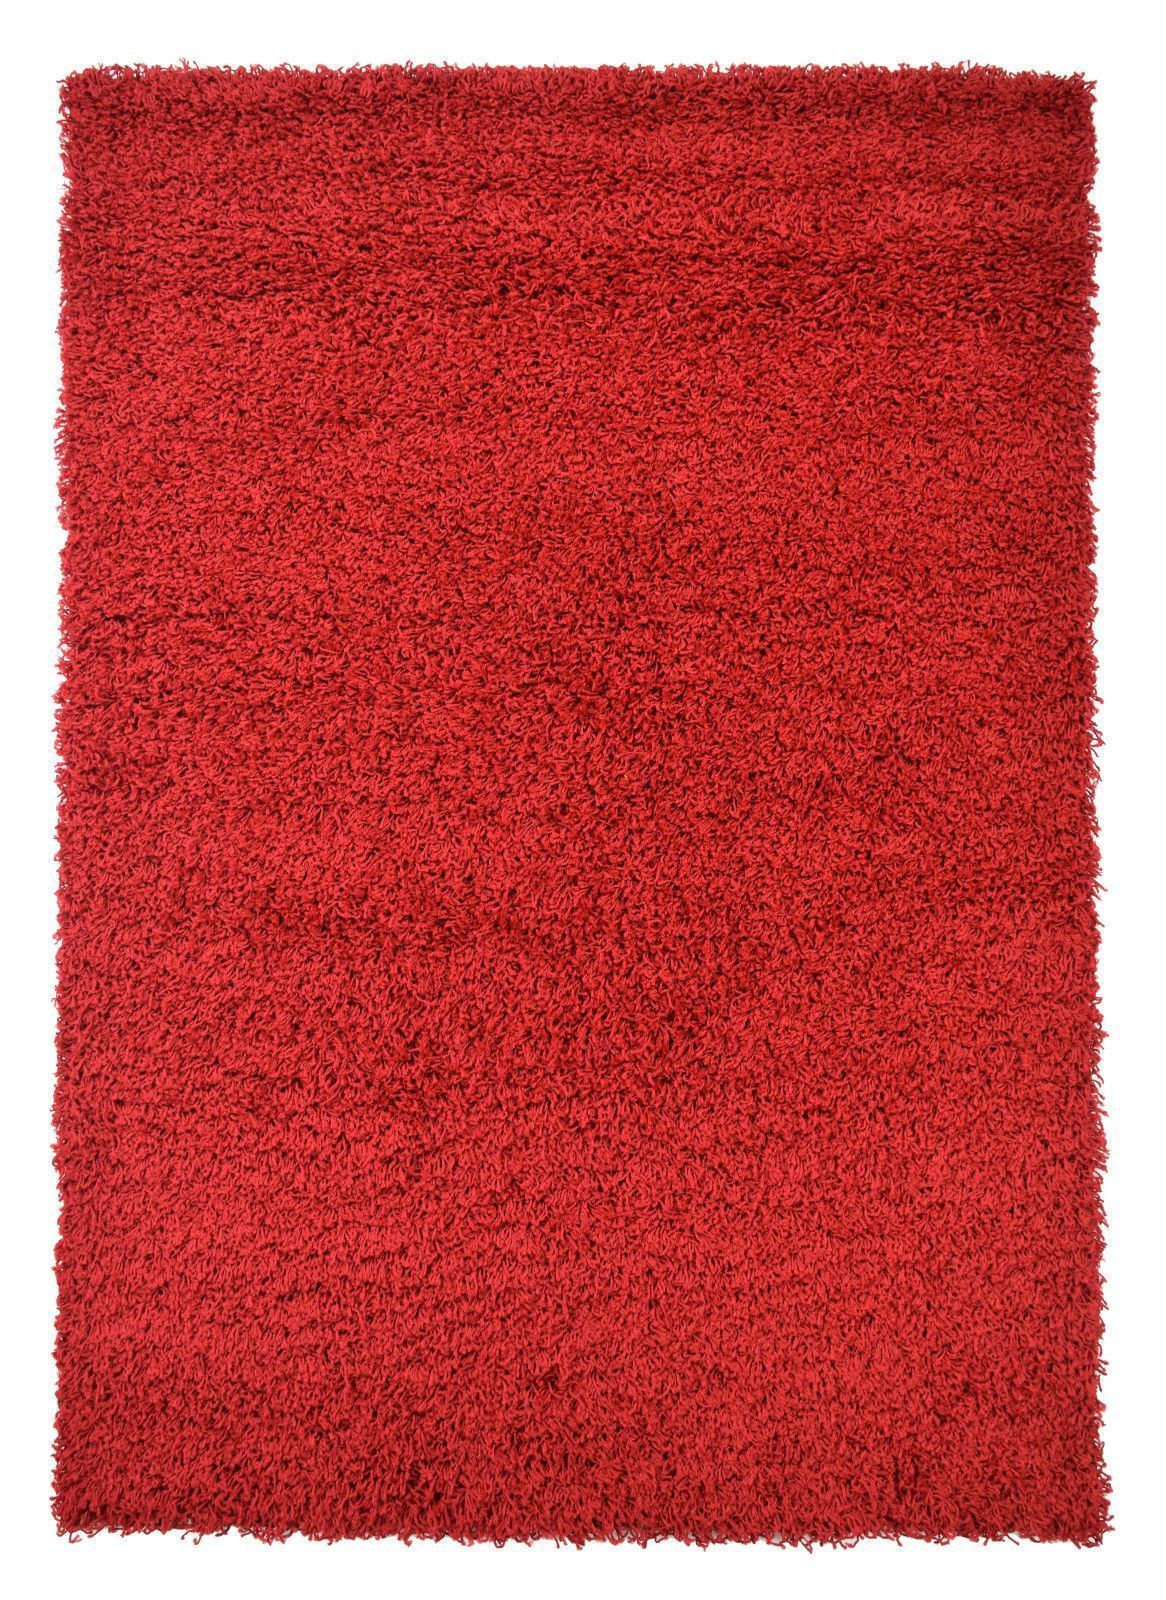 New Red Small Extra Large Shaggy Modern Traditional Soft